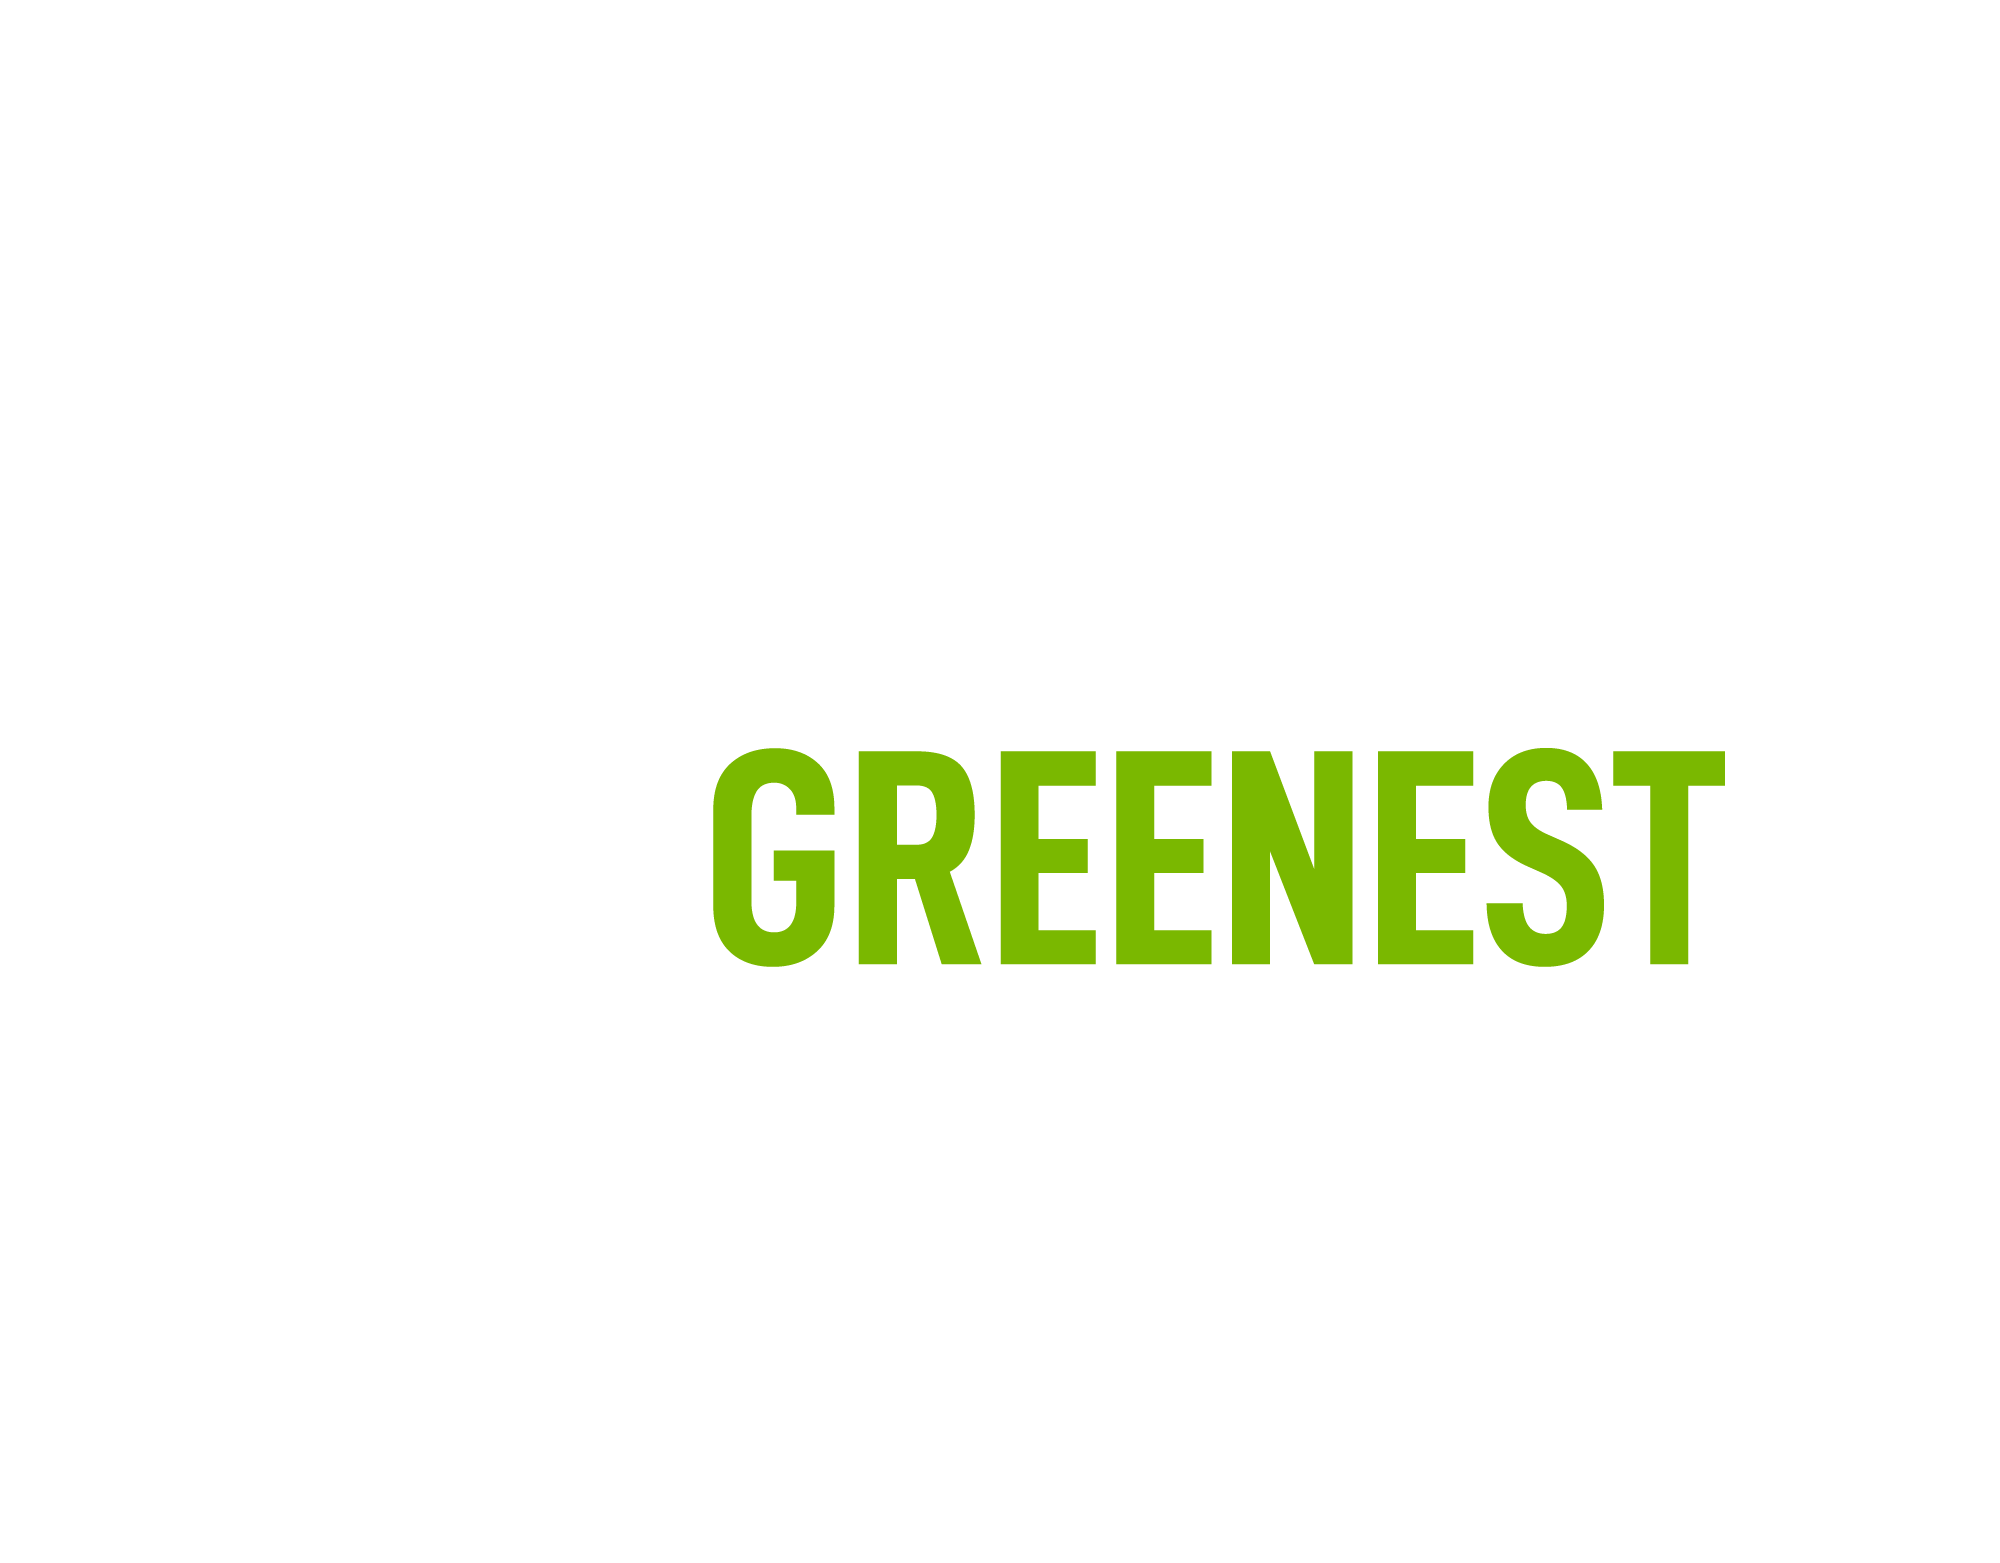 The Greenest Show On Grass